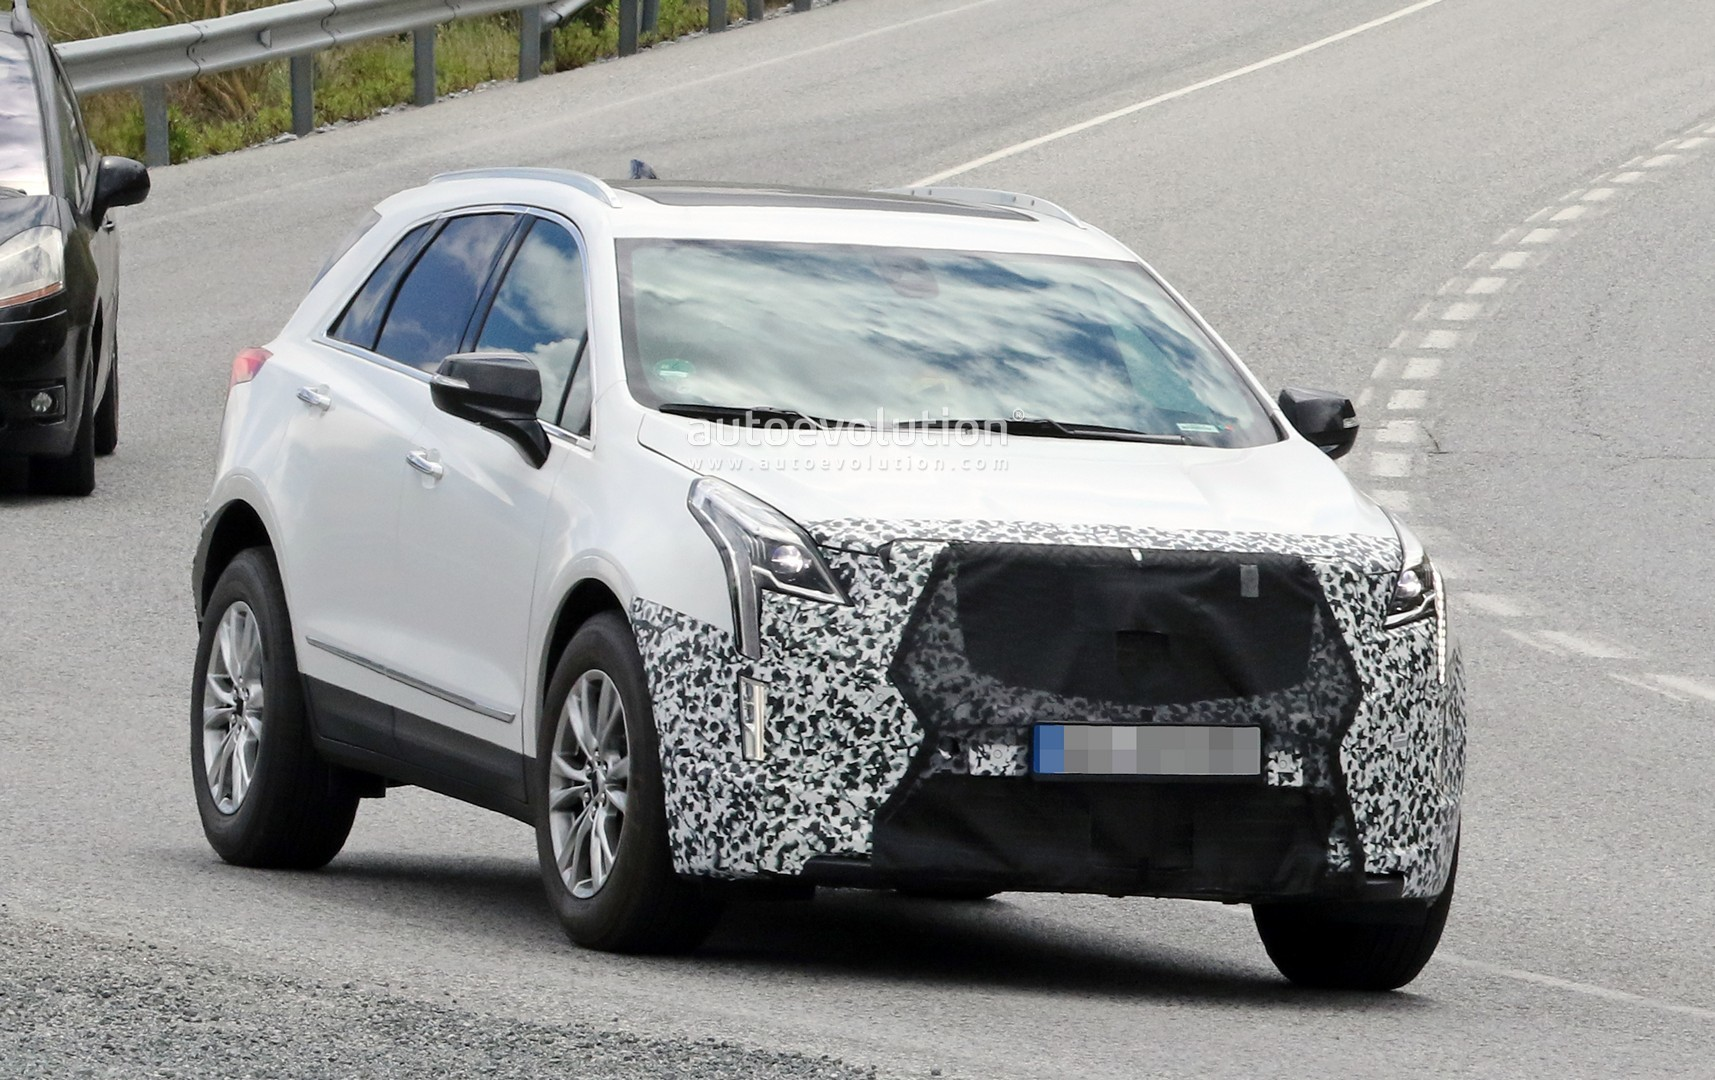 Cadillac Xt5 Gets More Expensive For 2019 Model Year